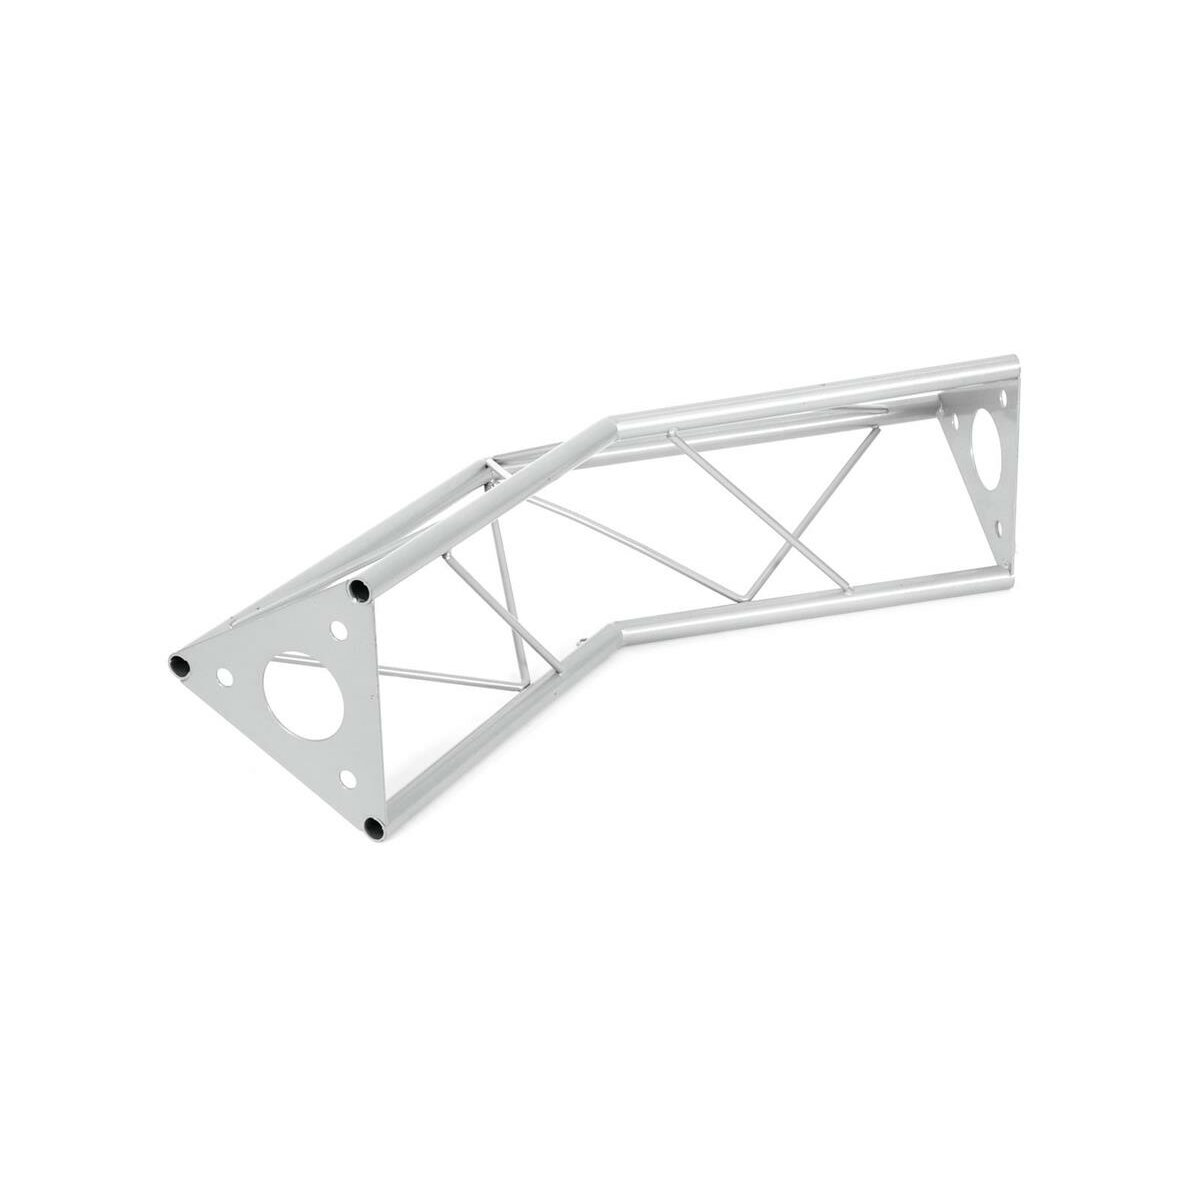 Alutruss Decotruss Ecke 2-Weg 135° SAC 23 silber